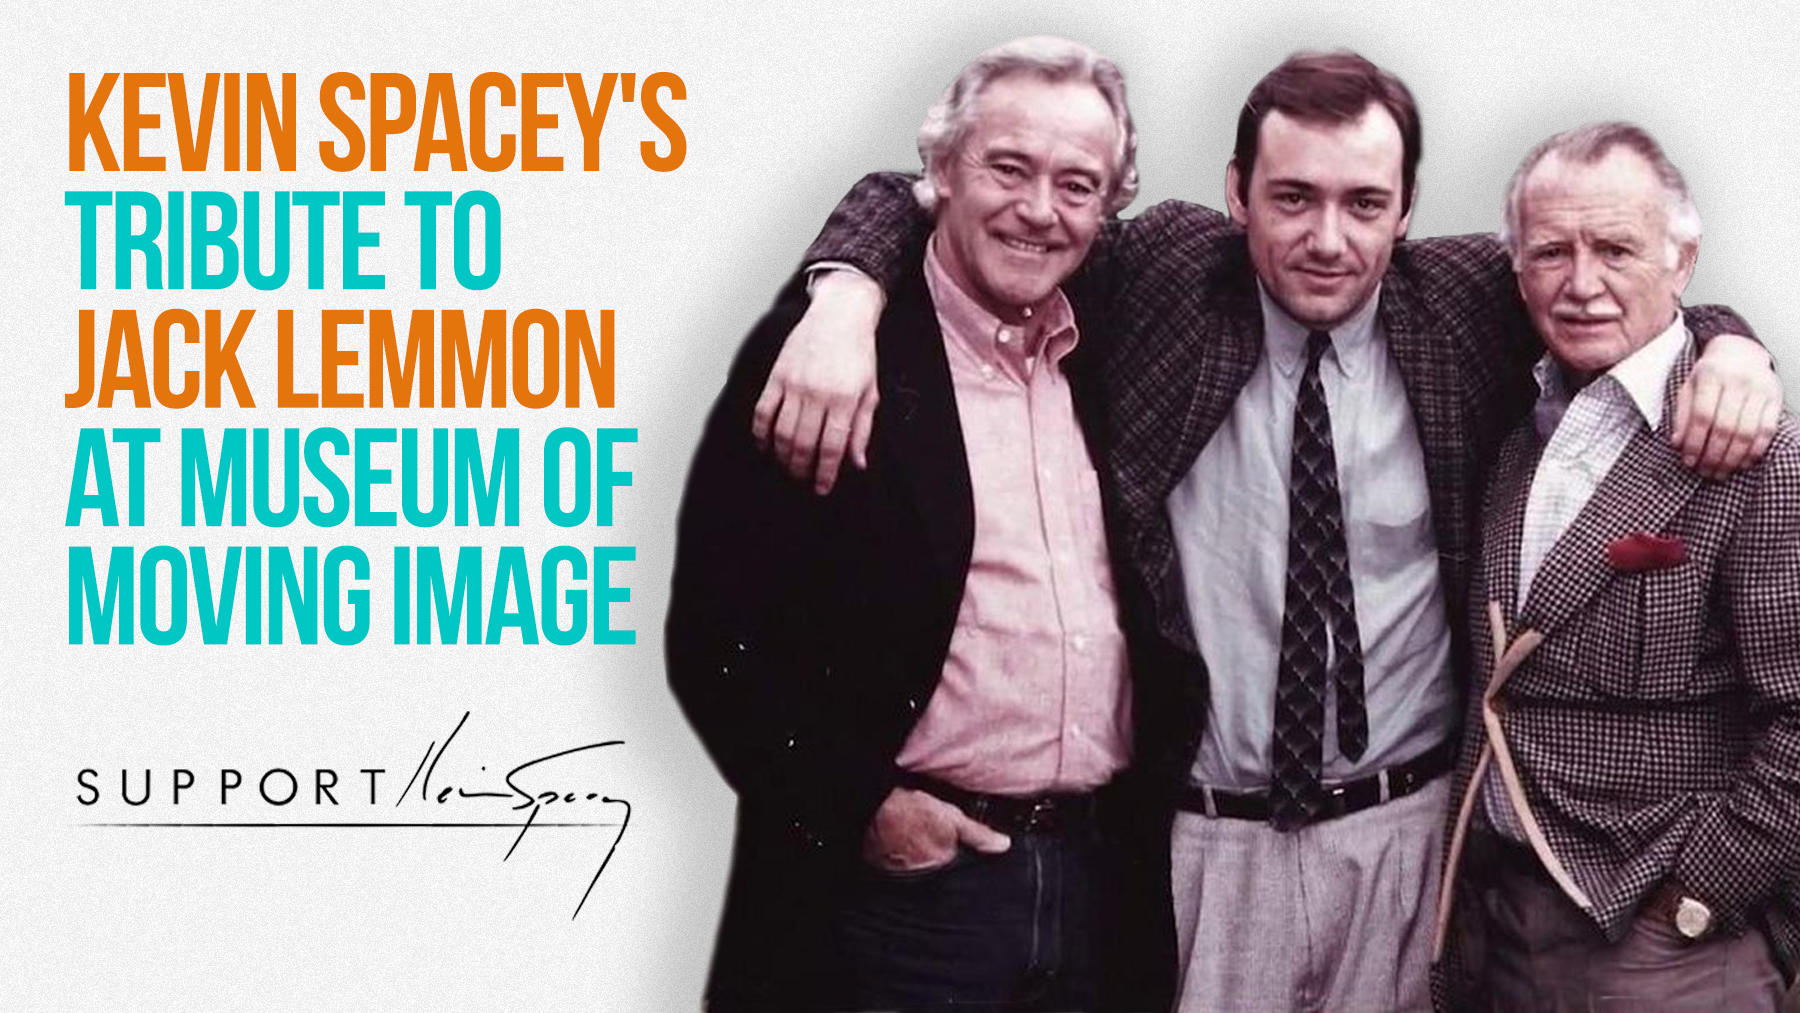 kevi nspacey jack lemmon supportkevinspacey.com